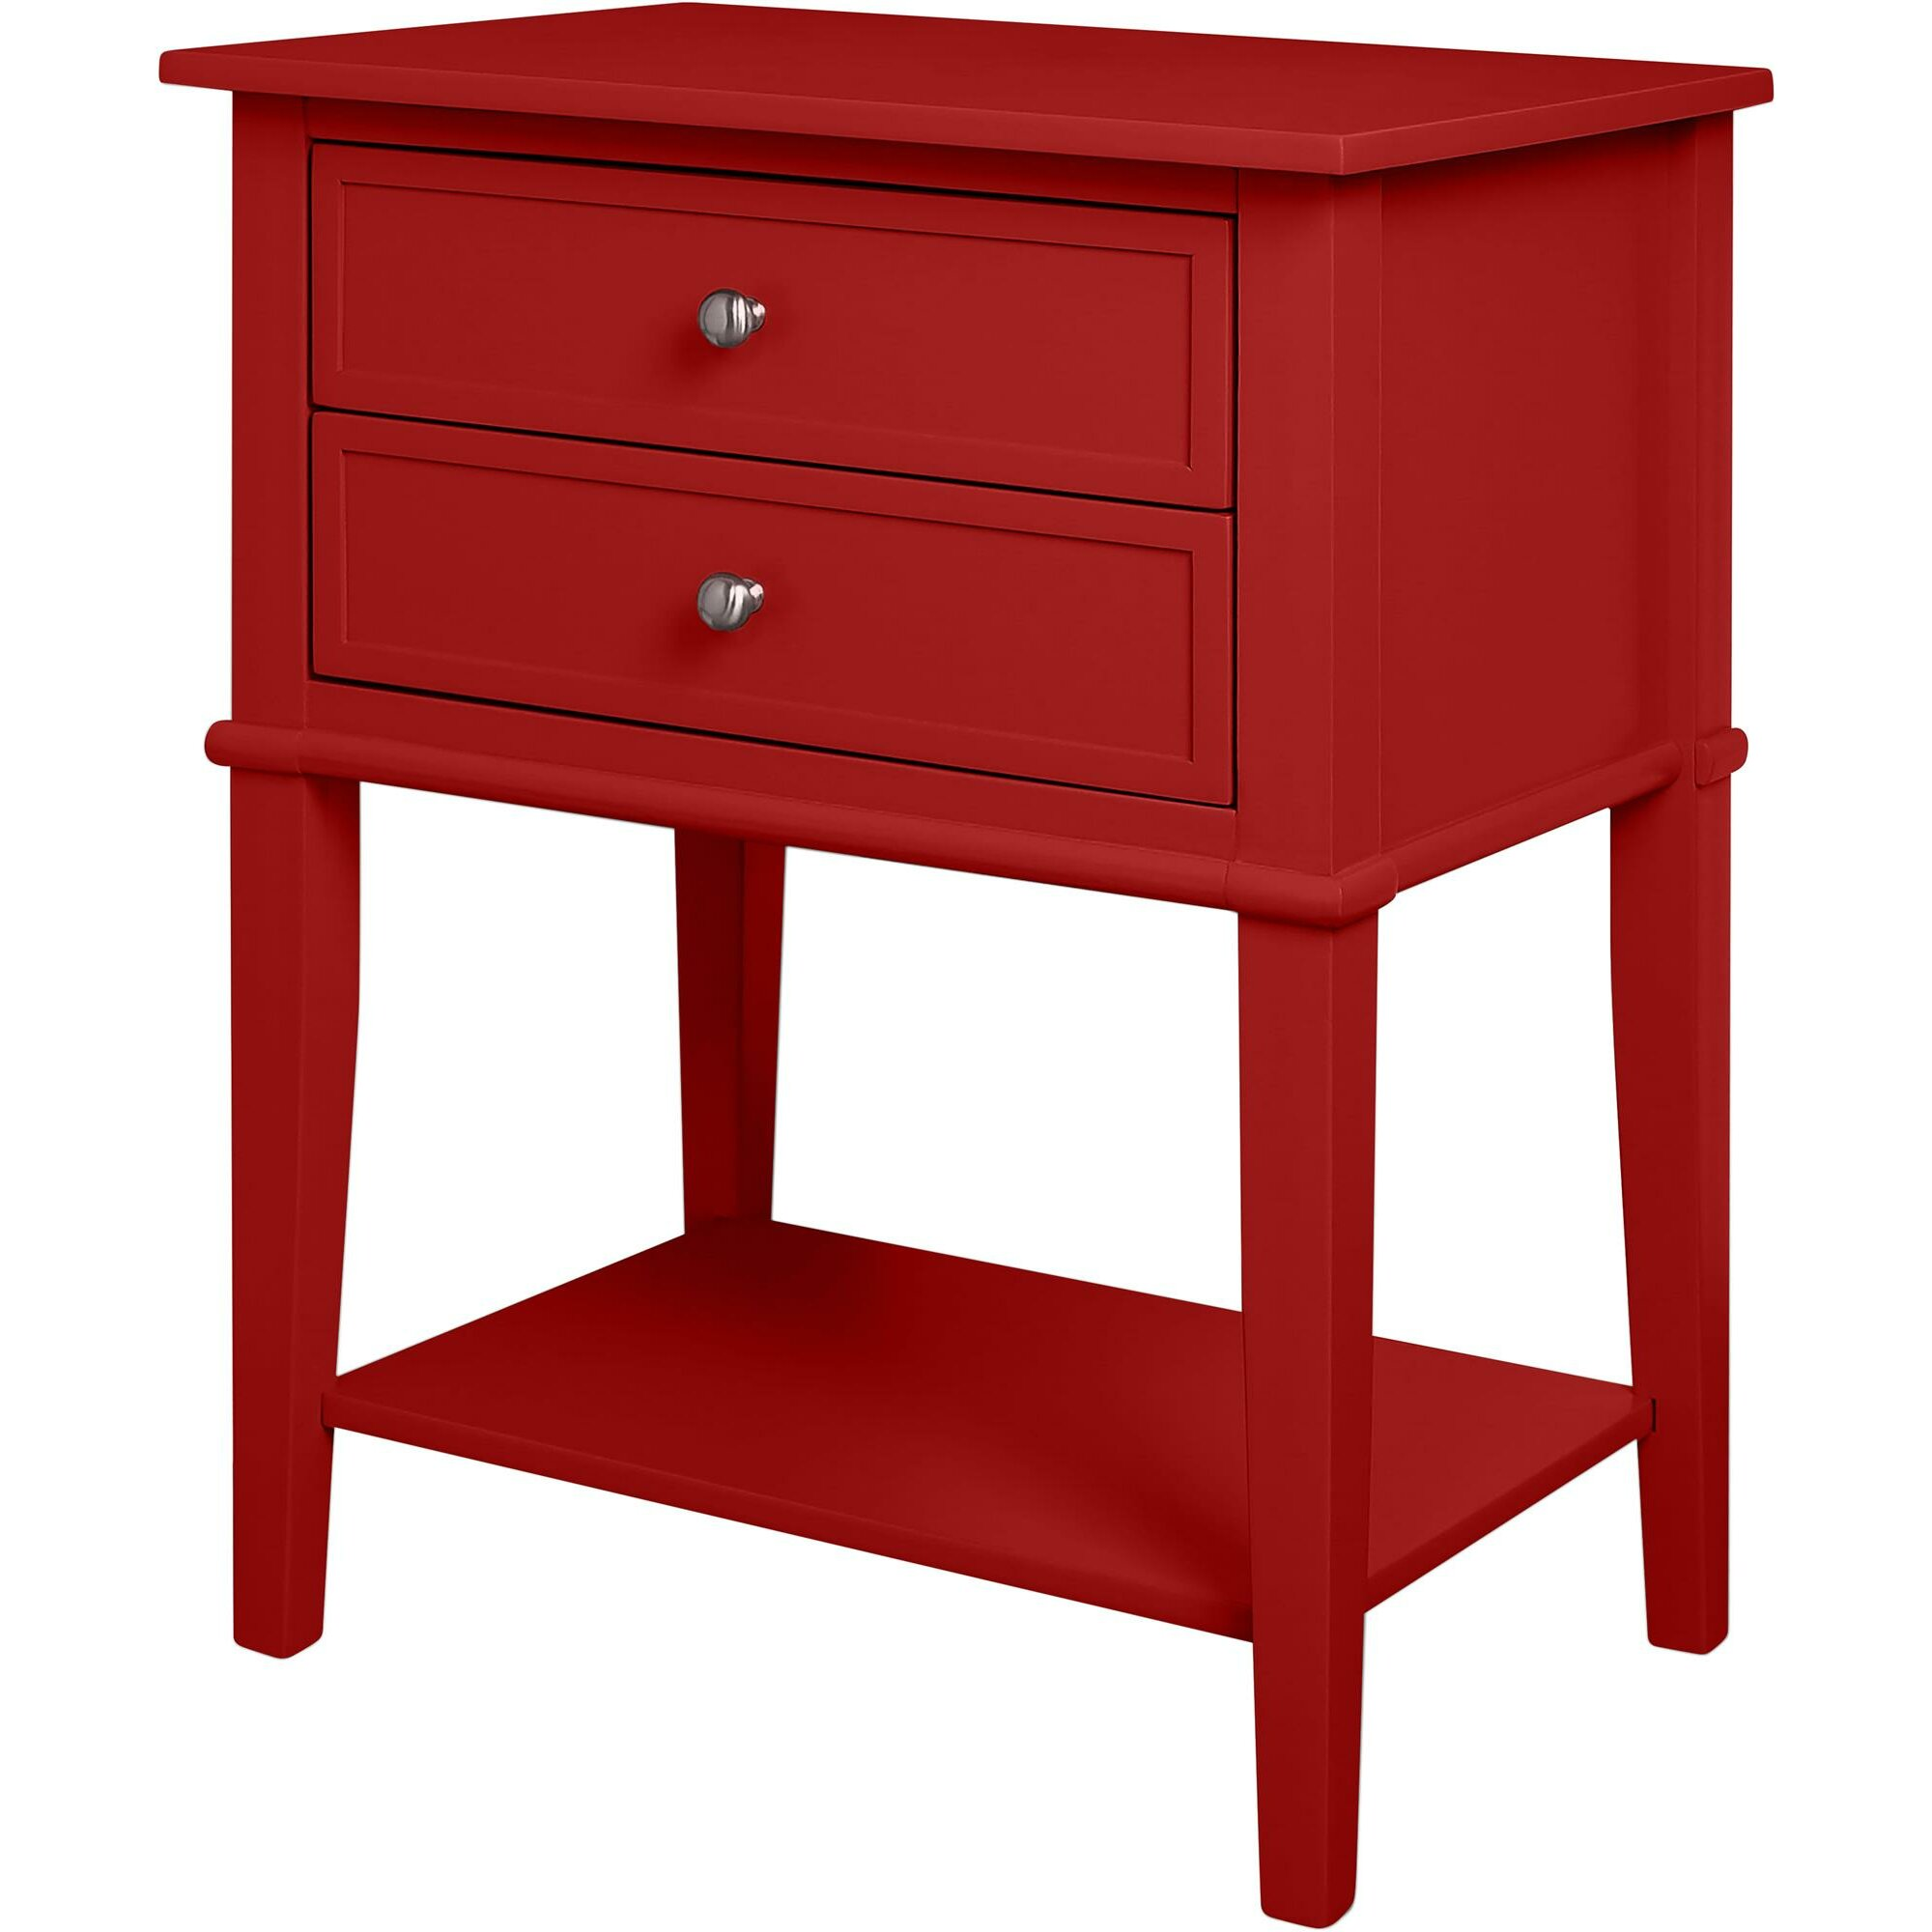 Breakwater bay banbury 2 drawer end table reviews wayfair for End tables with drawers